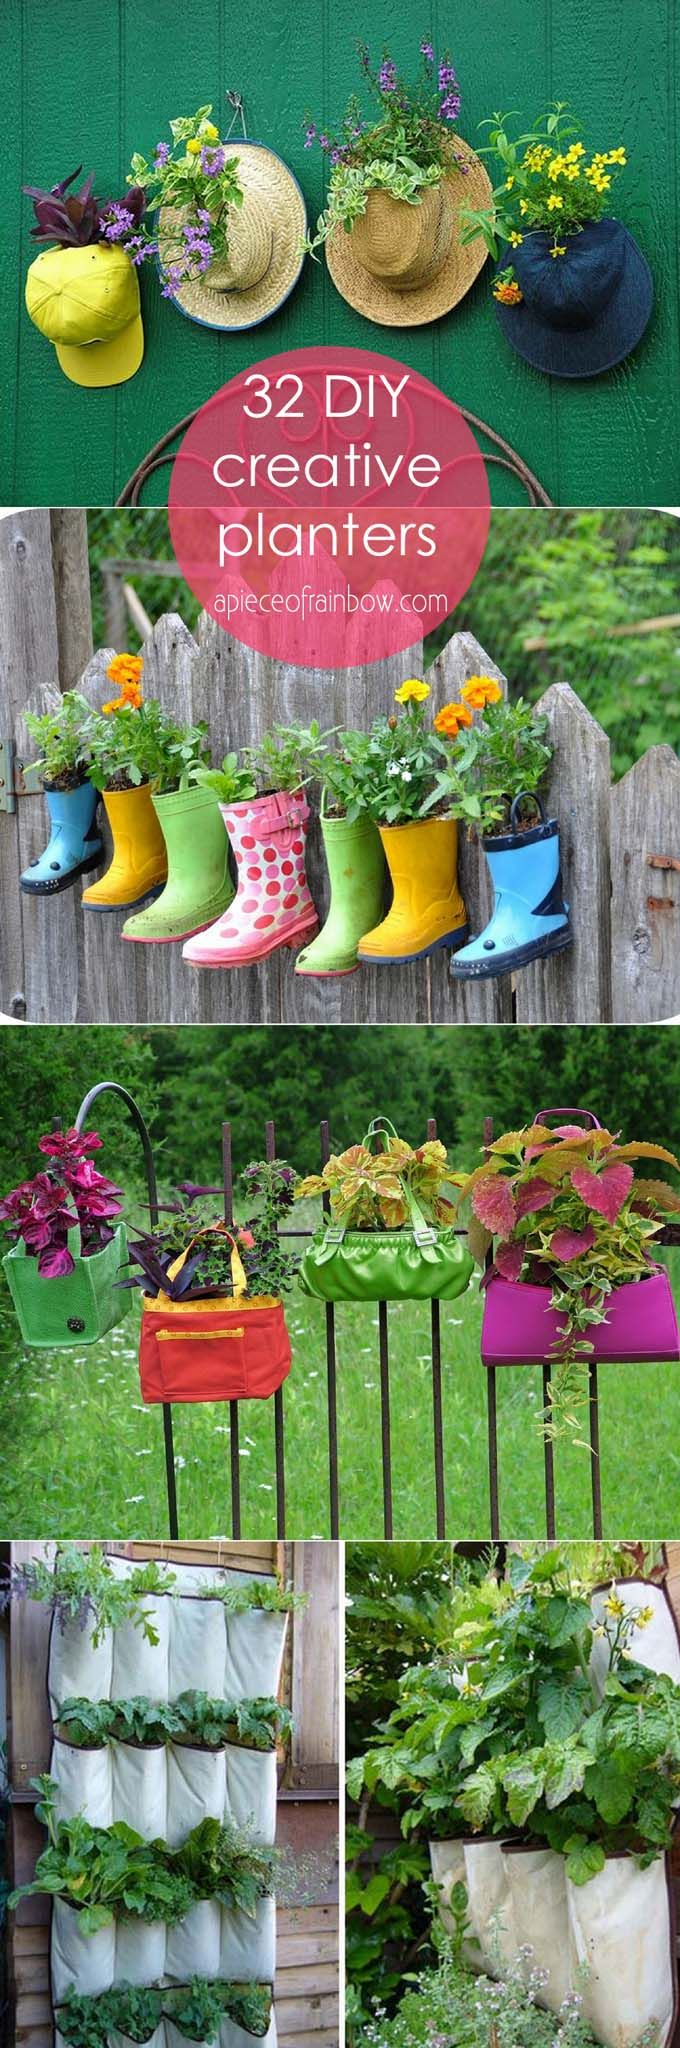 Great 32 Most Creative And Unique Planter Tutorials! How To Make Your Own Plating  Containers From